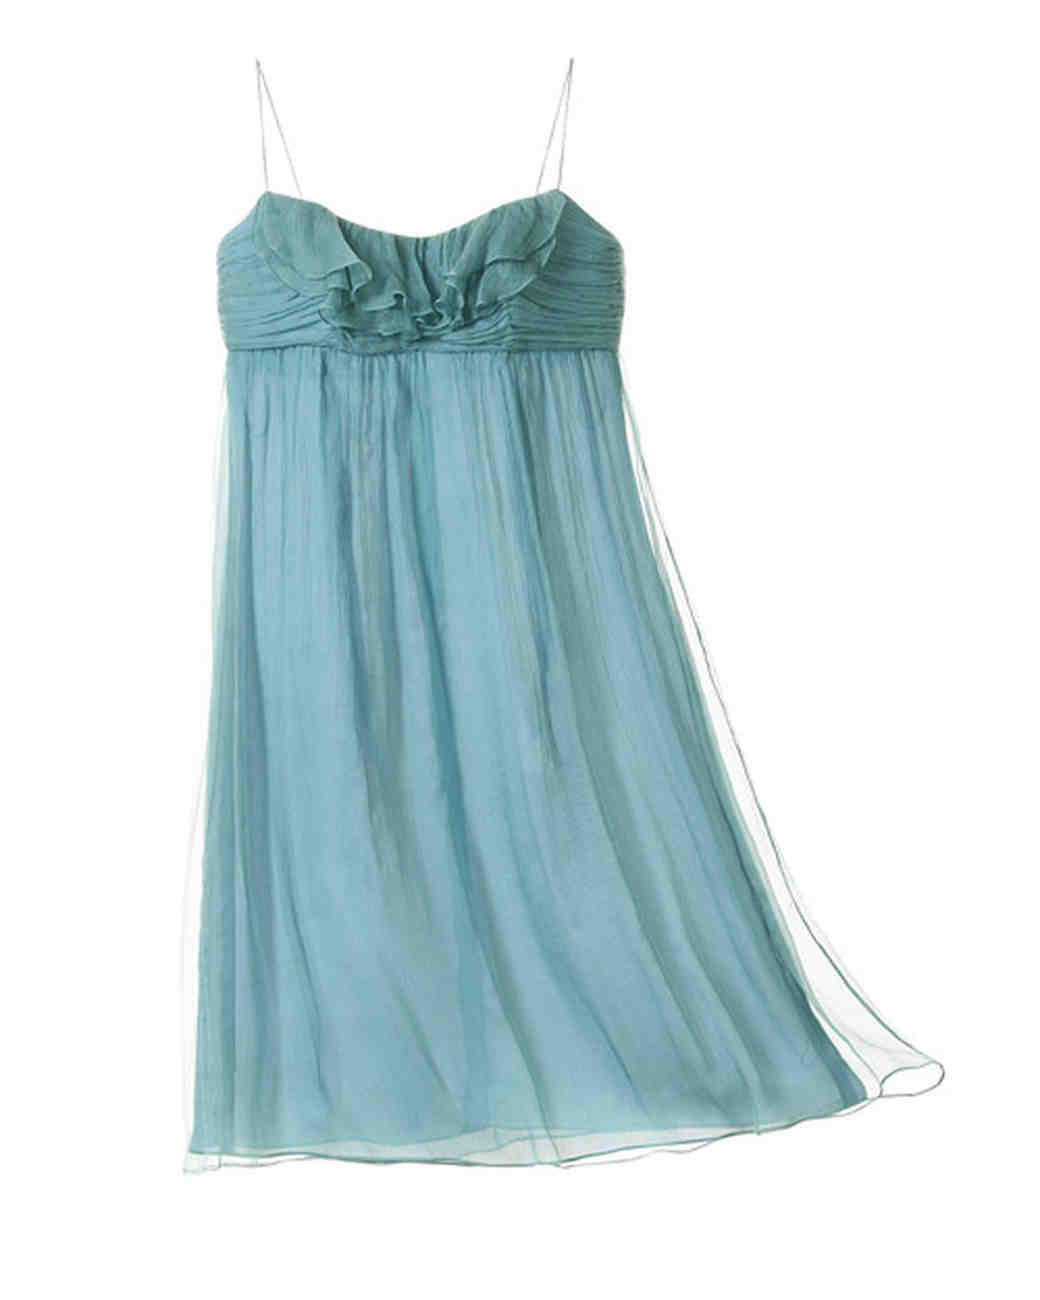 mwd104718_sum09_dress7s.jpg